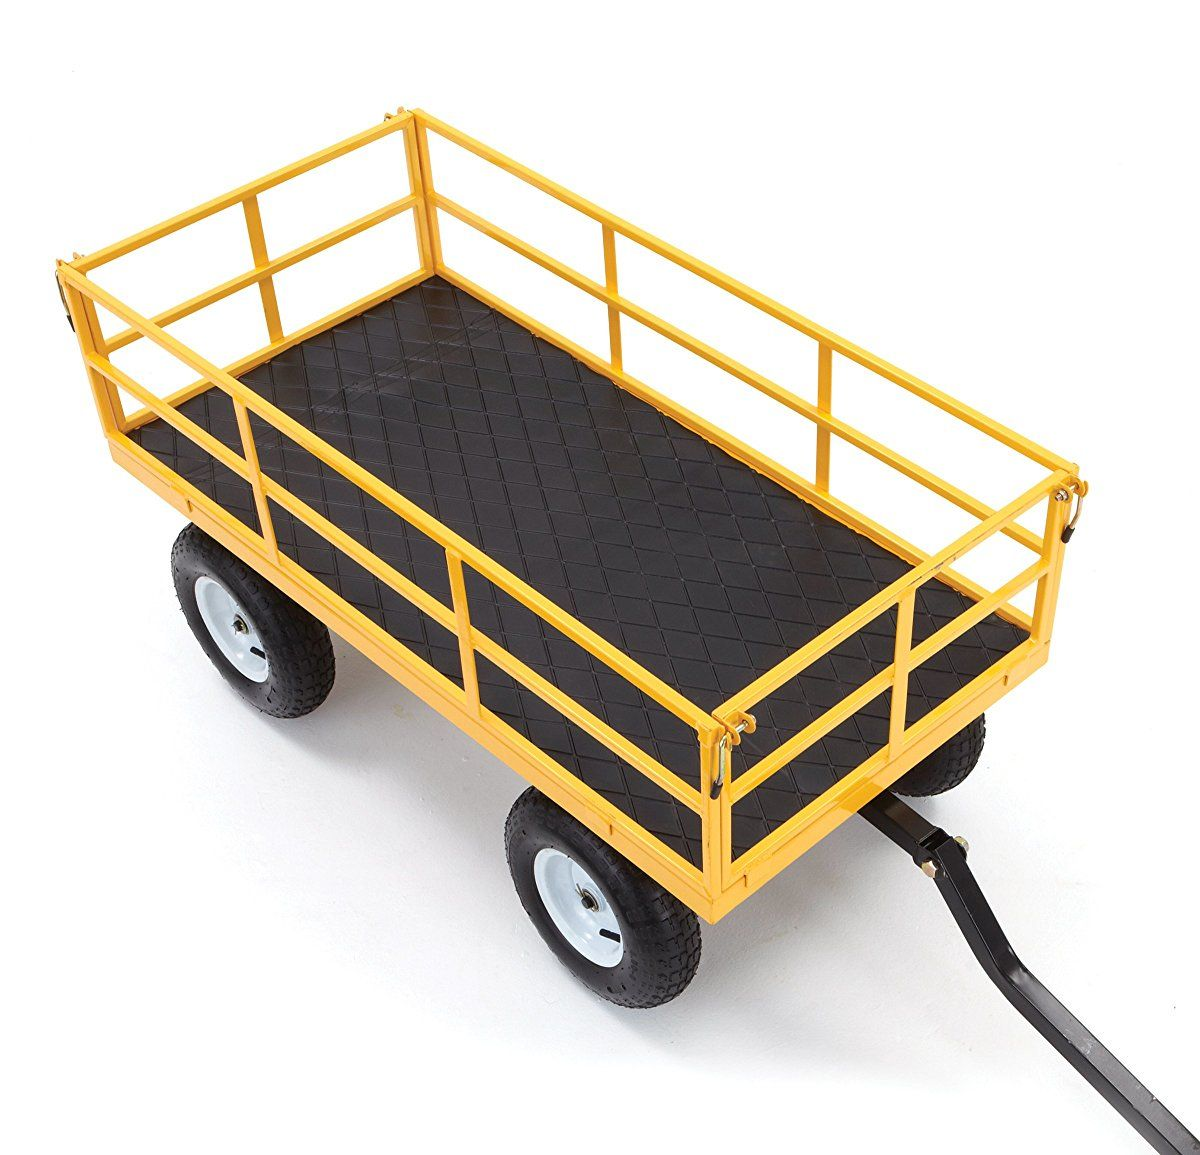 Gorilla Carts HeavyDuty Steel Utility Cart with Removable